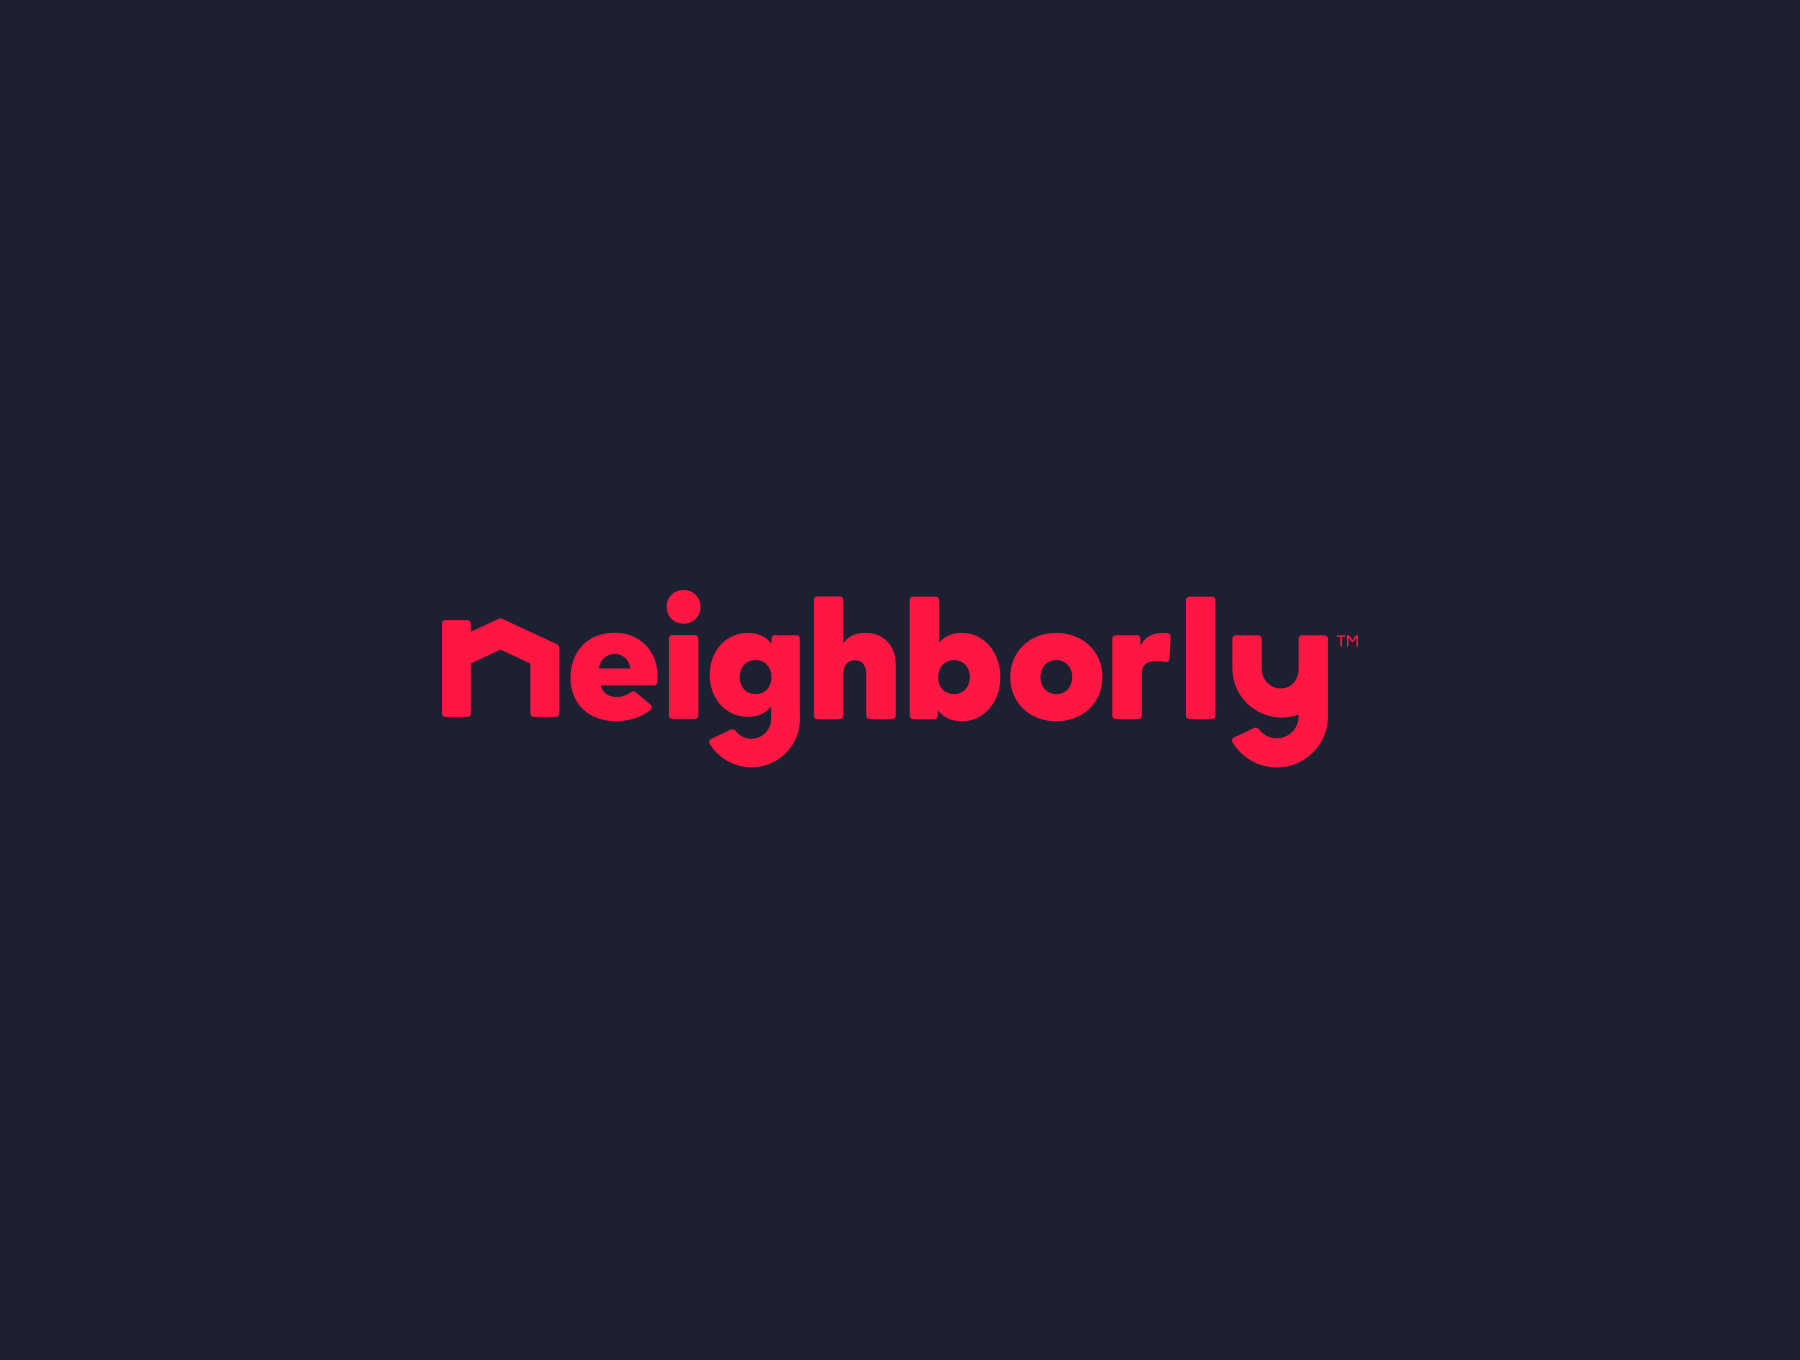 thumbnail-neighborly@2x.png